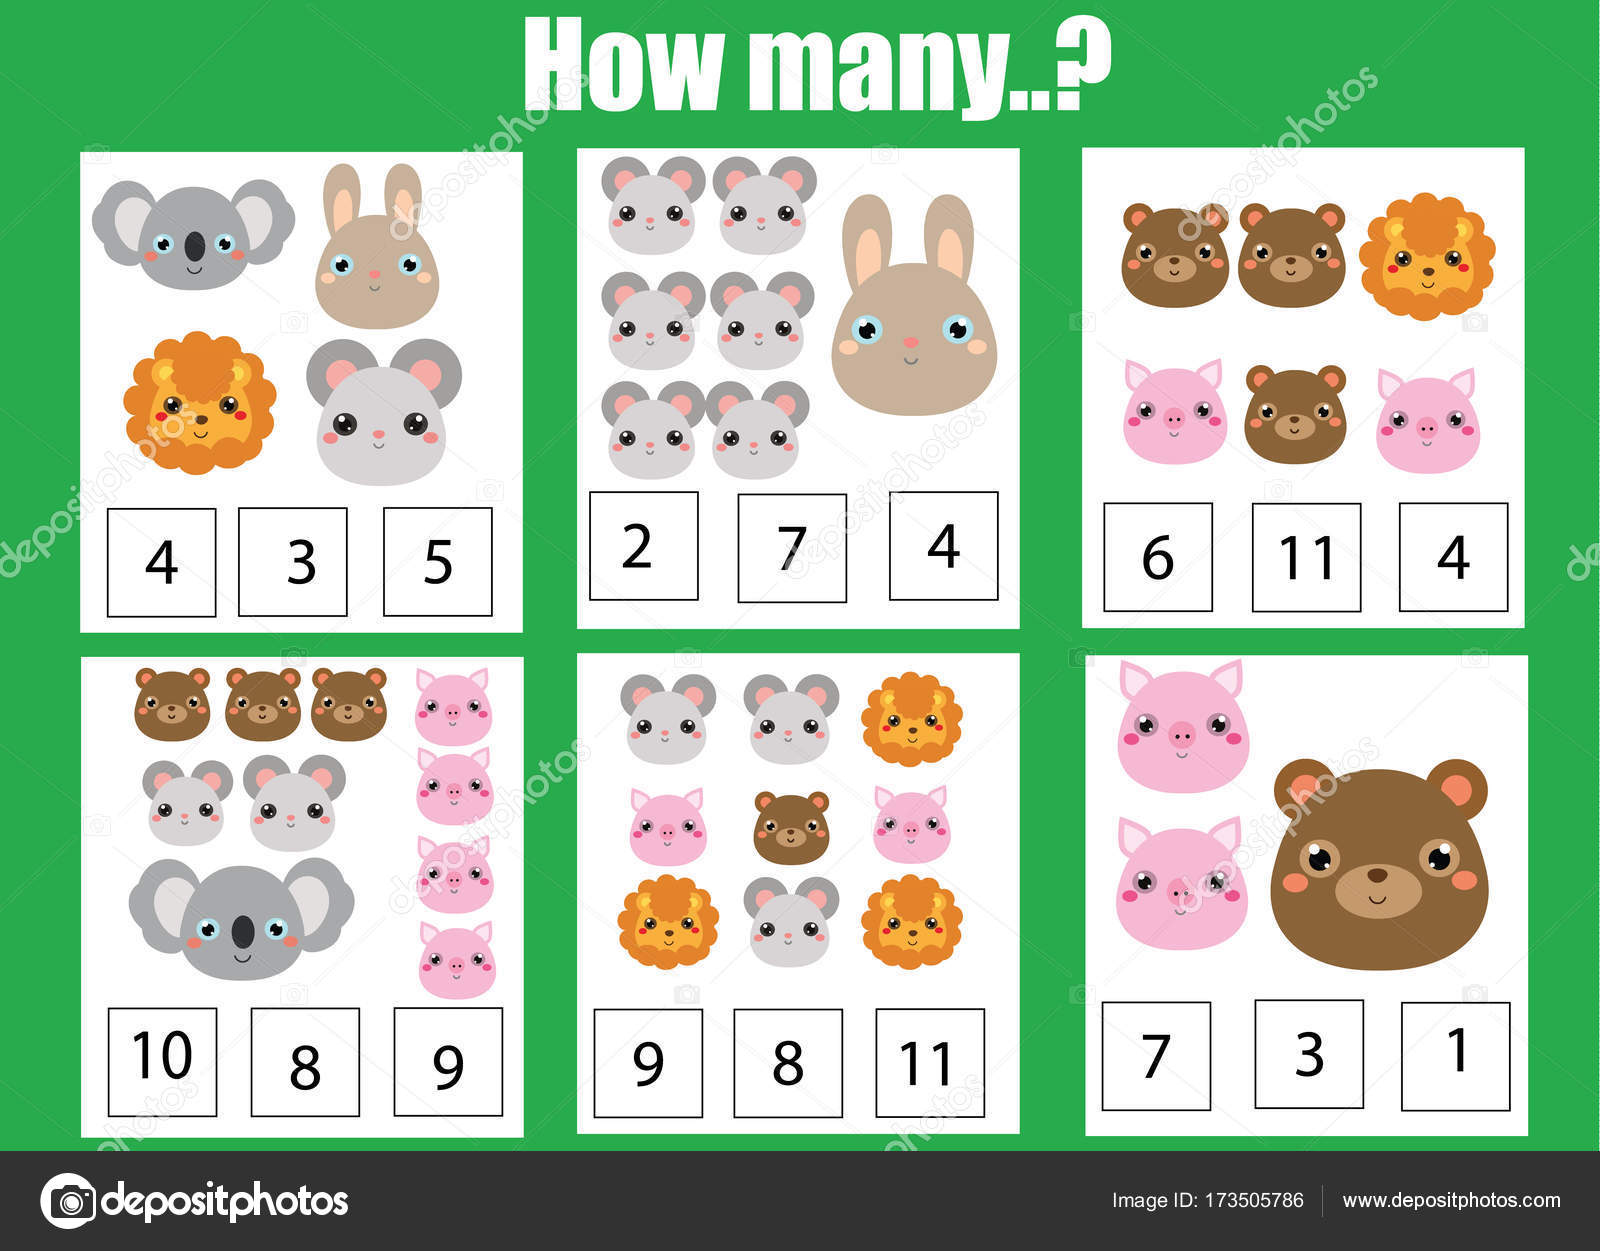 Counting educational children game, math kids activity. How many ...